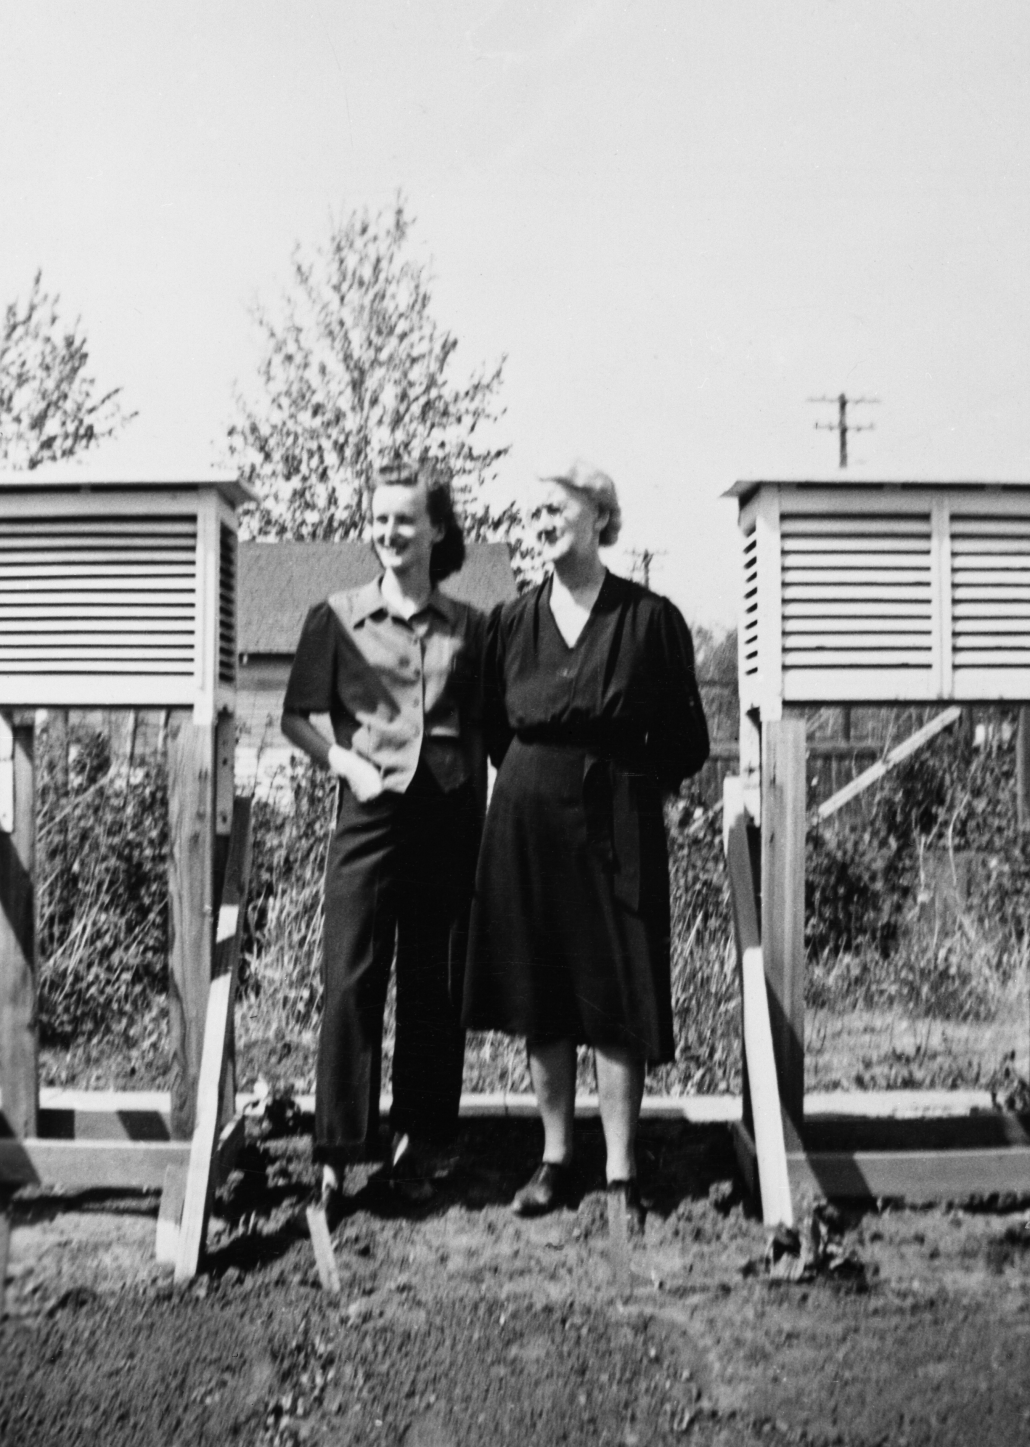 Eda Owen, meteorologist, and granddaughter Pam, Edmonton, Alberta circa 1940-1949. At top of McDougall Hill. Image courtesy of the Glenbow Archives na-4844-21.